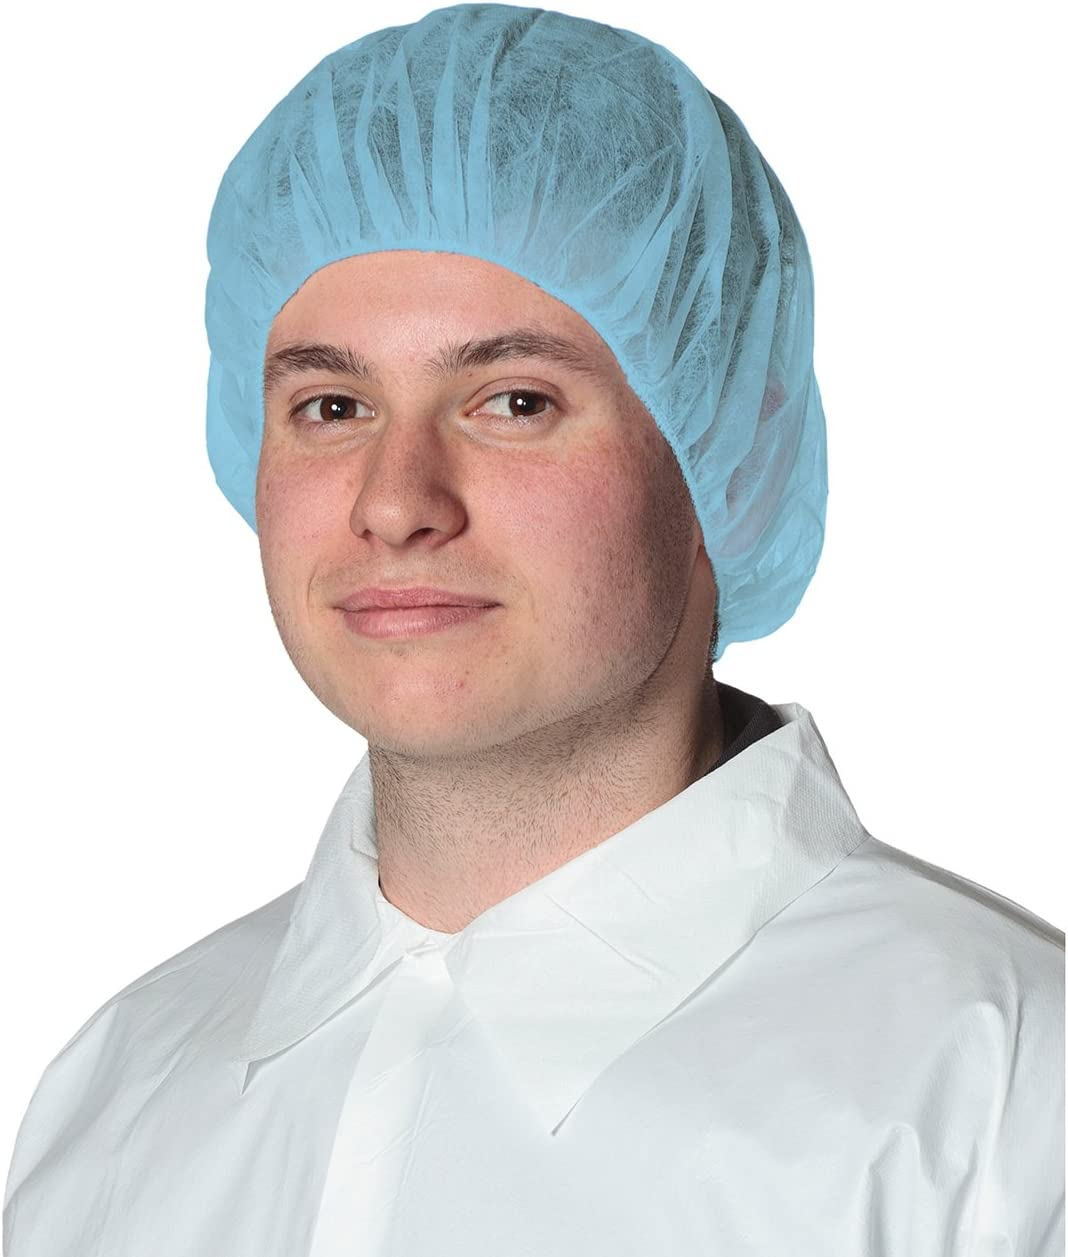 Pioneer V7012140-O//S Disposable Bouffant Cap Polypropylene Blue Fit All